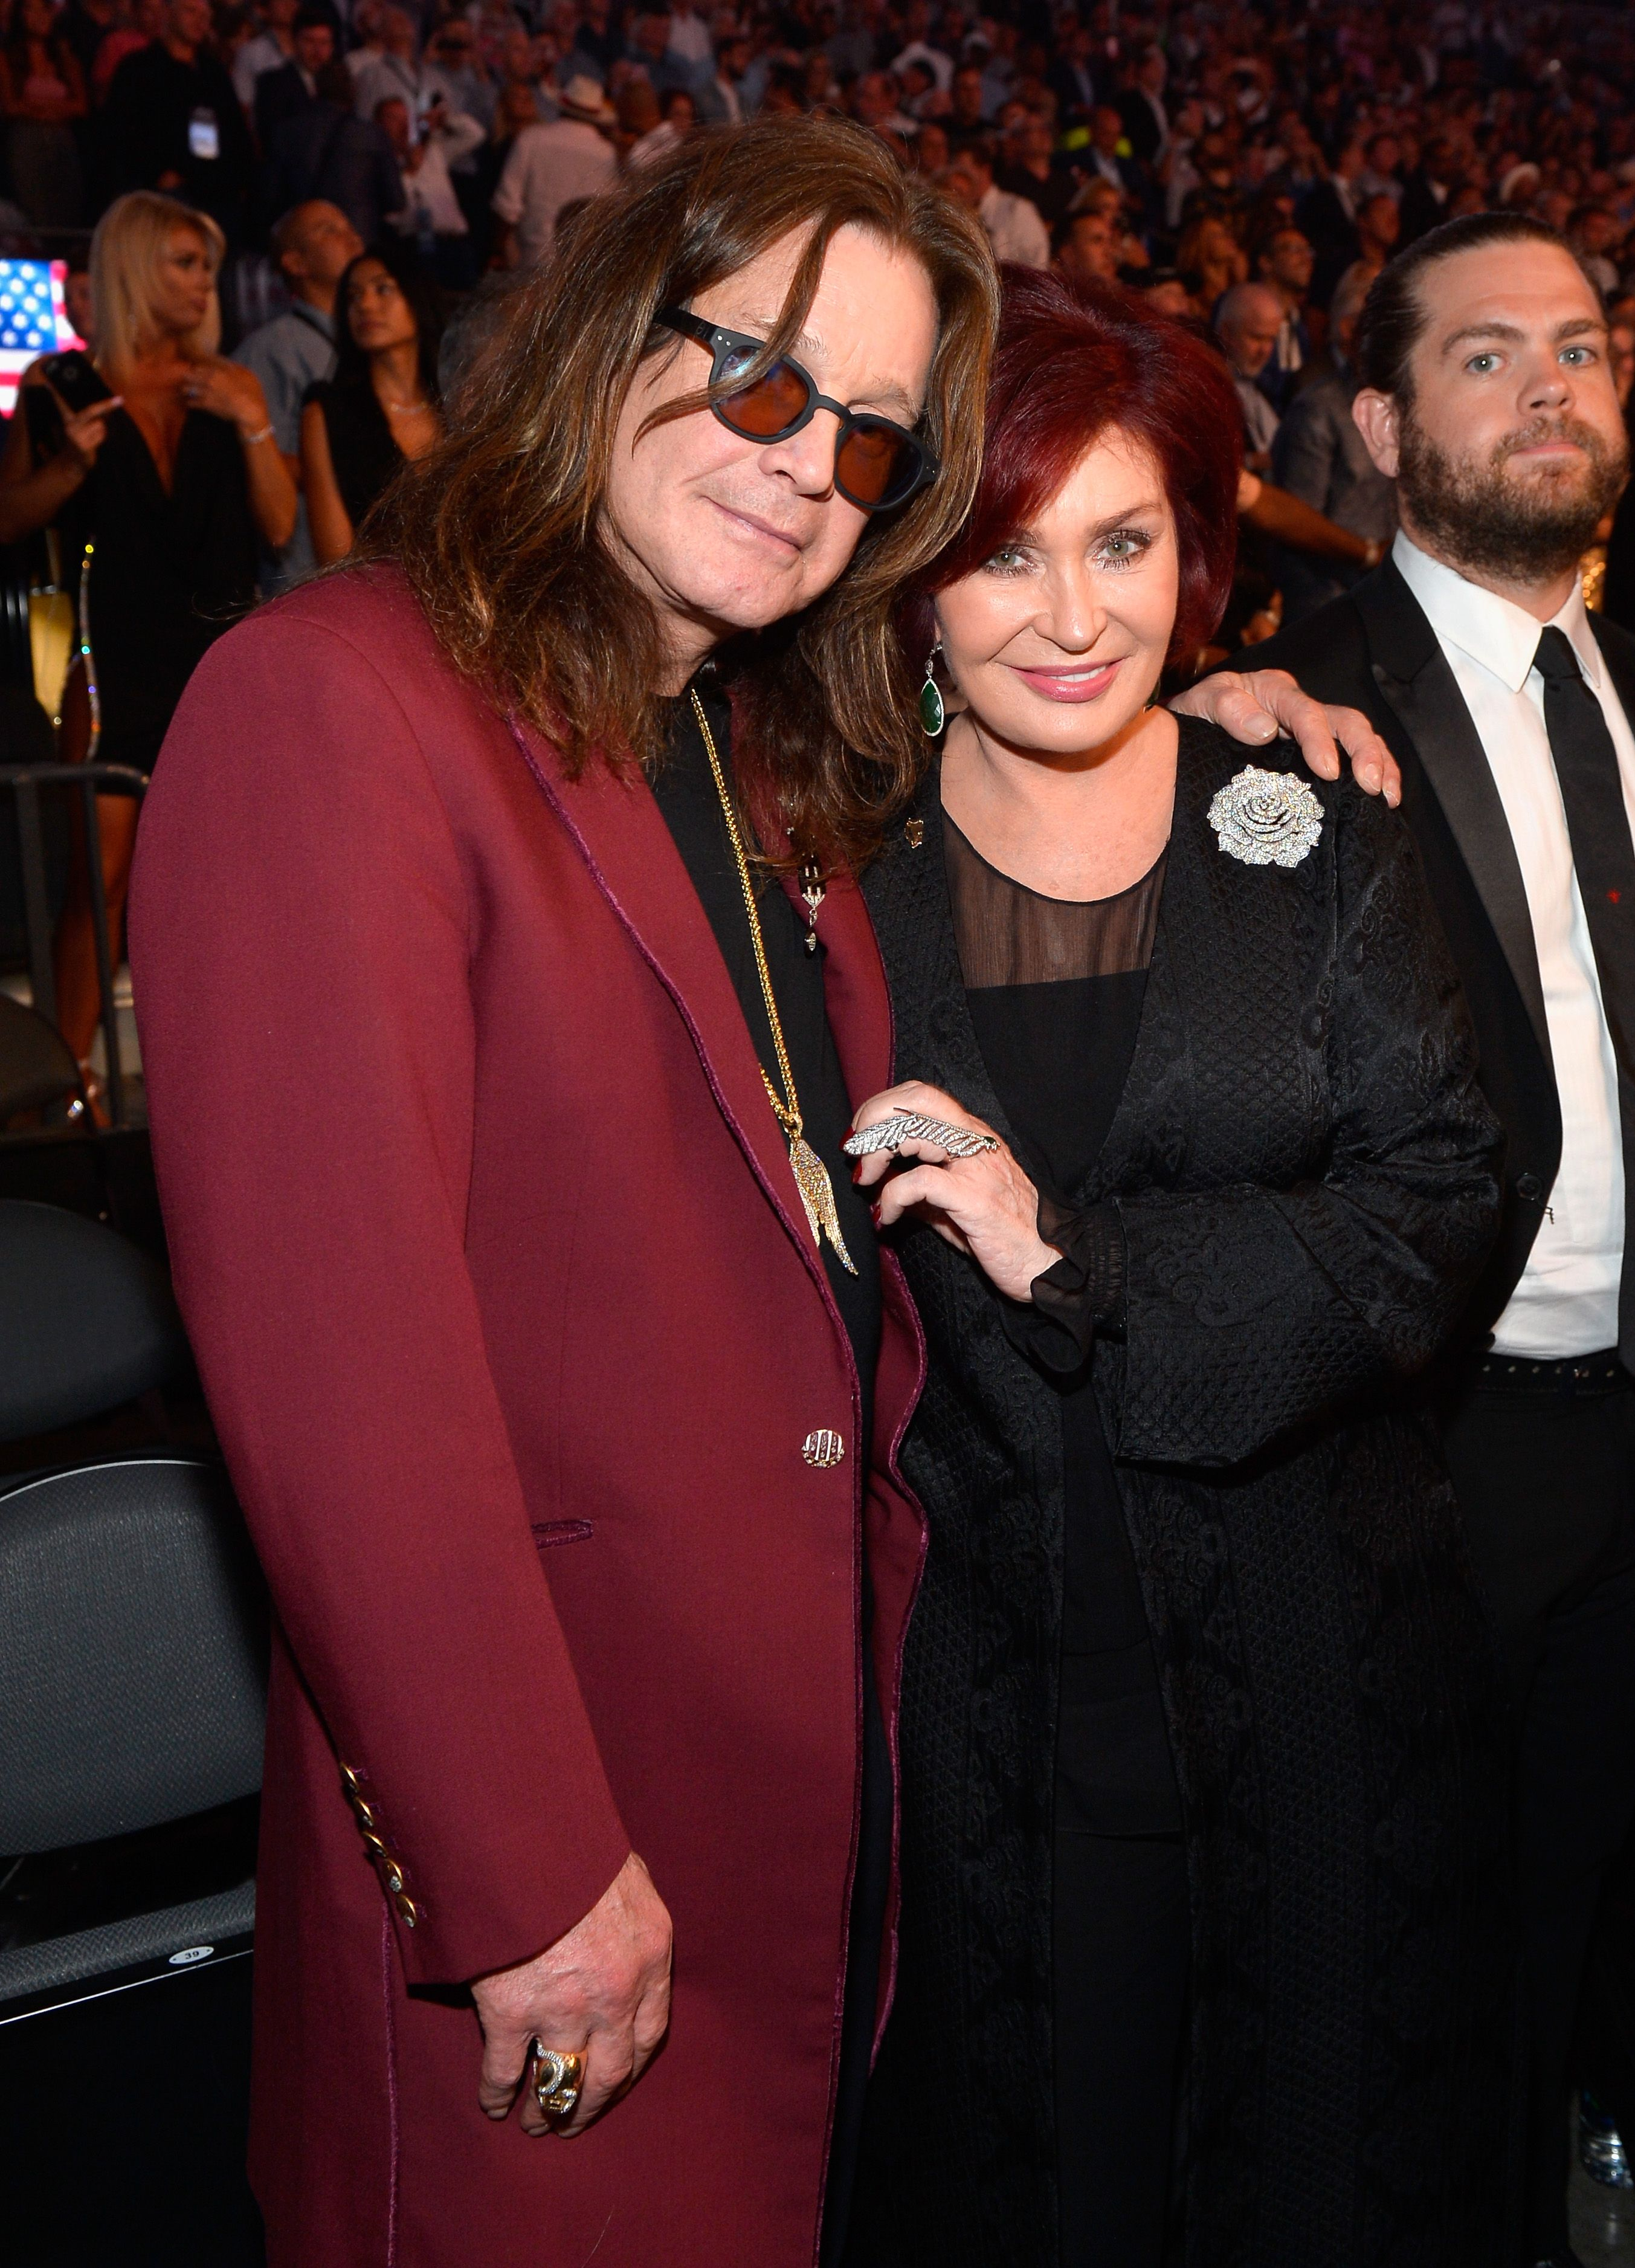 Ozzy Osbourne and Sharon Osbourne at the Showtime, WME IME and Mayweather Promotions VIP Pre-Fight party in 2017 | Source: Getty Images